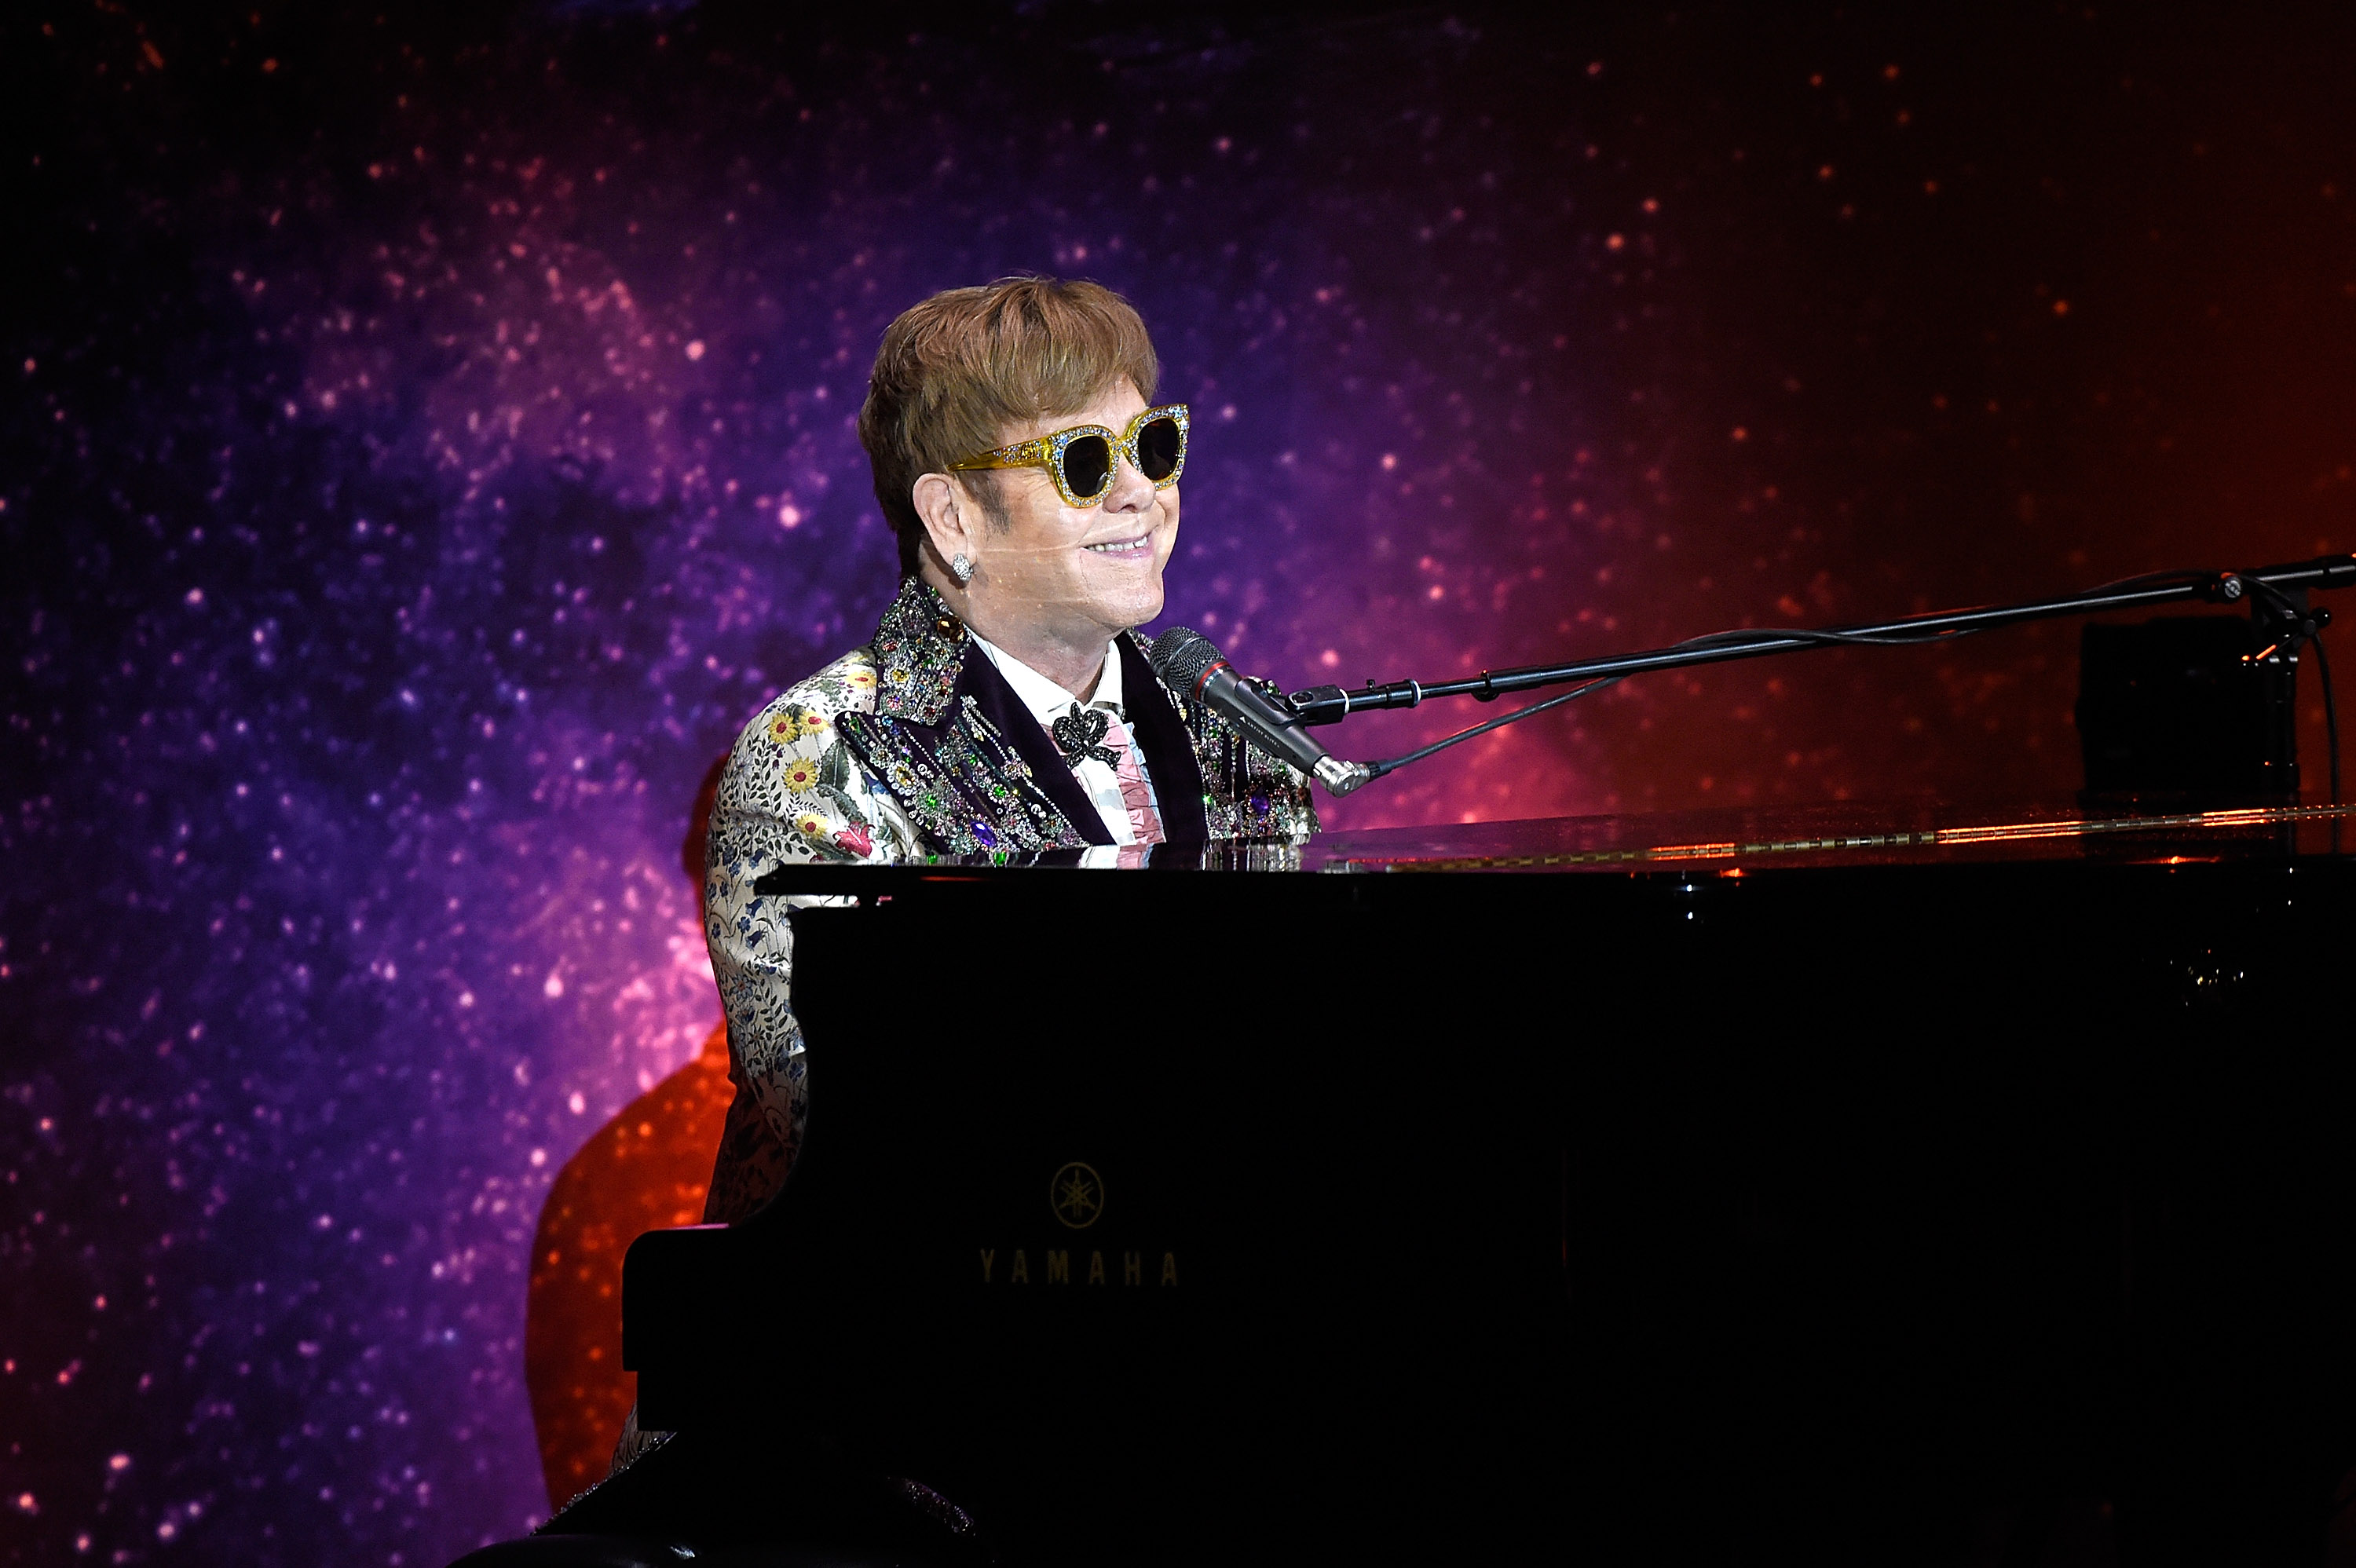 As he retires from touring, here's what Elton John and his music have meant to me over the years